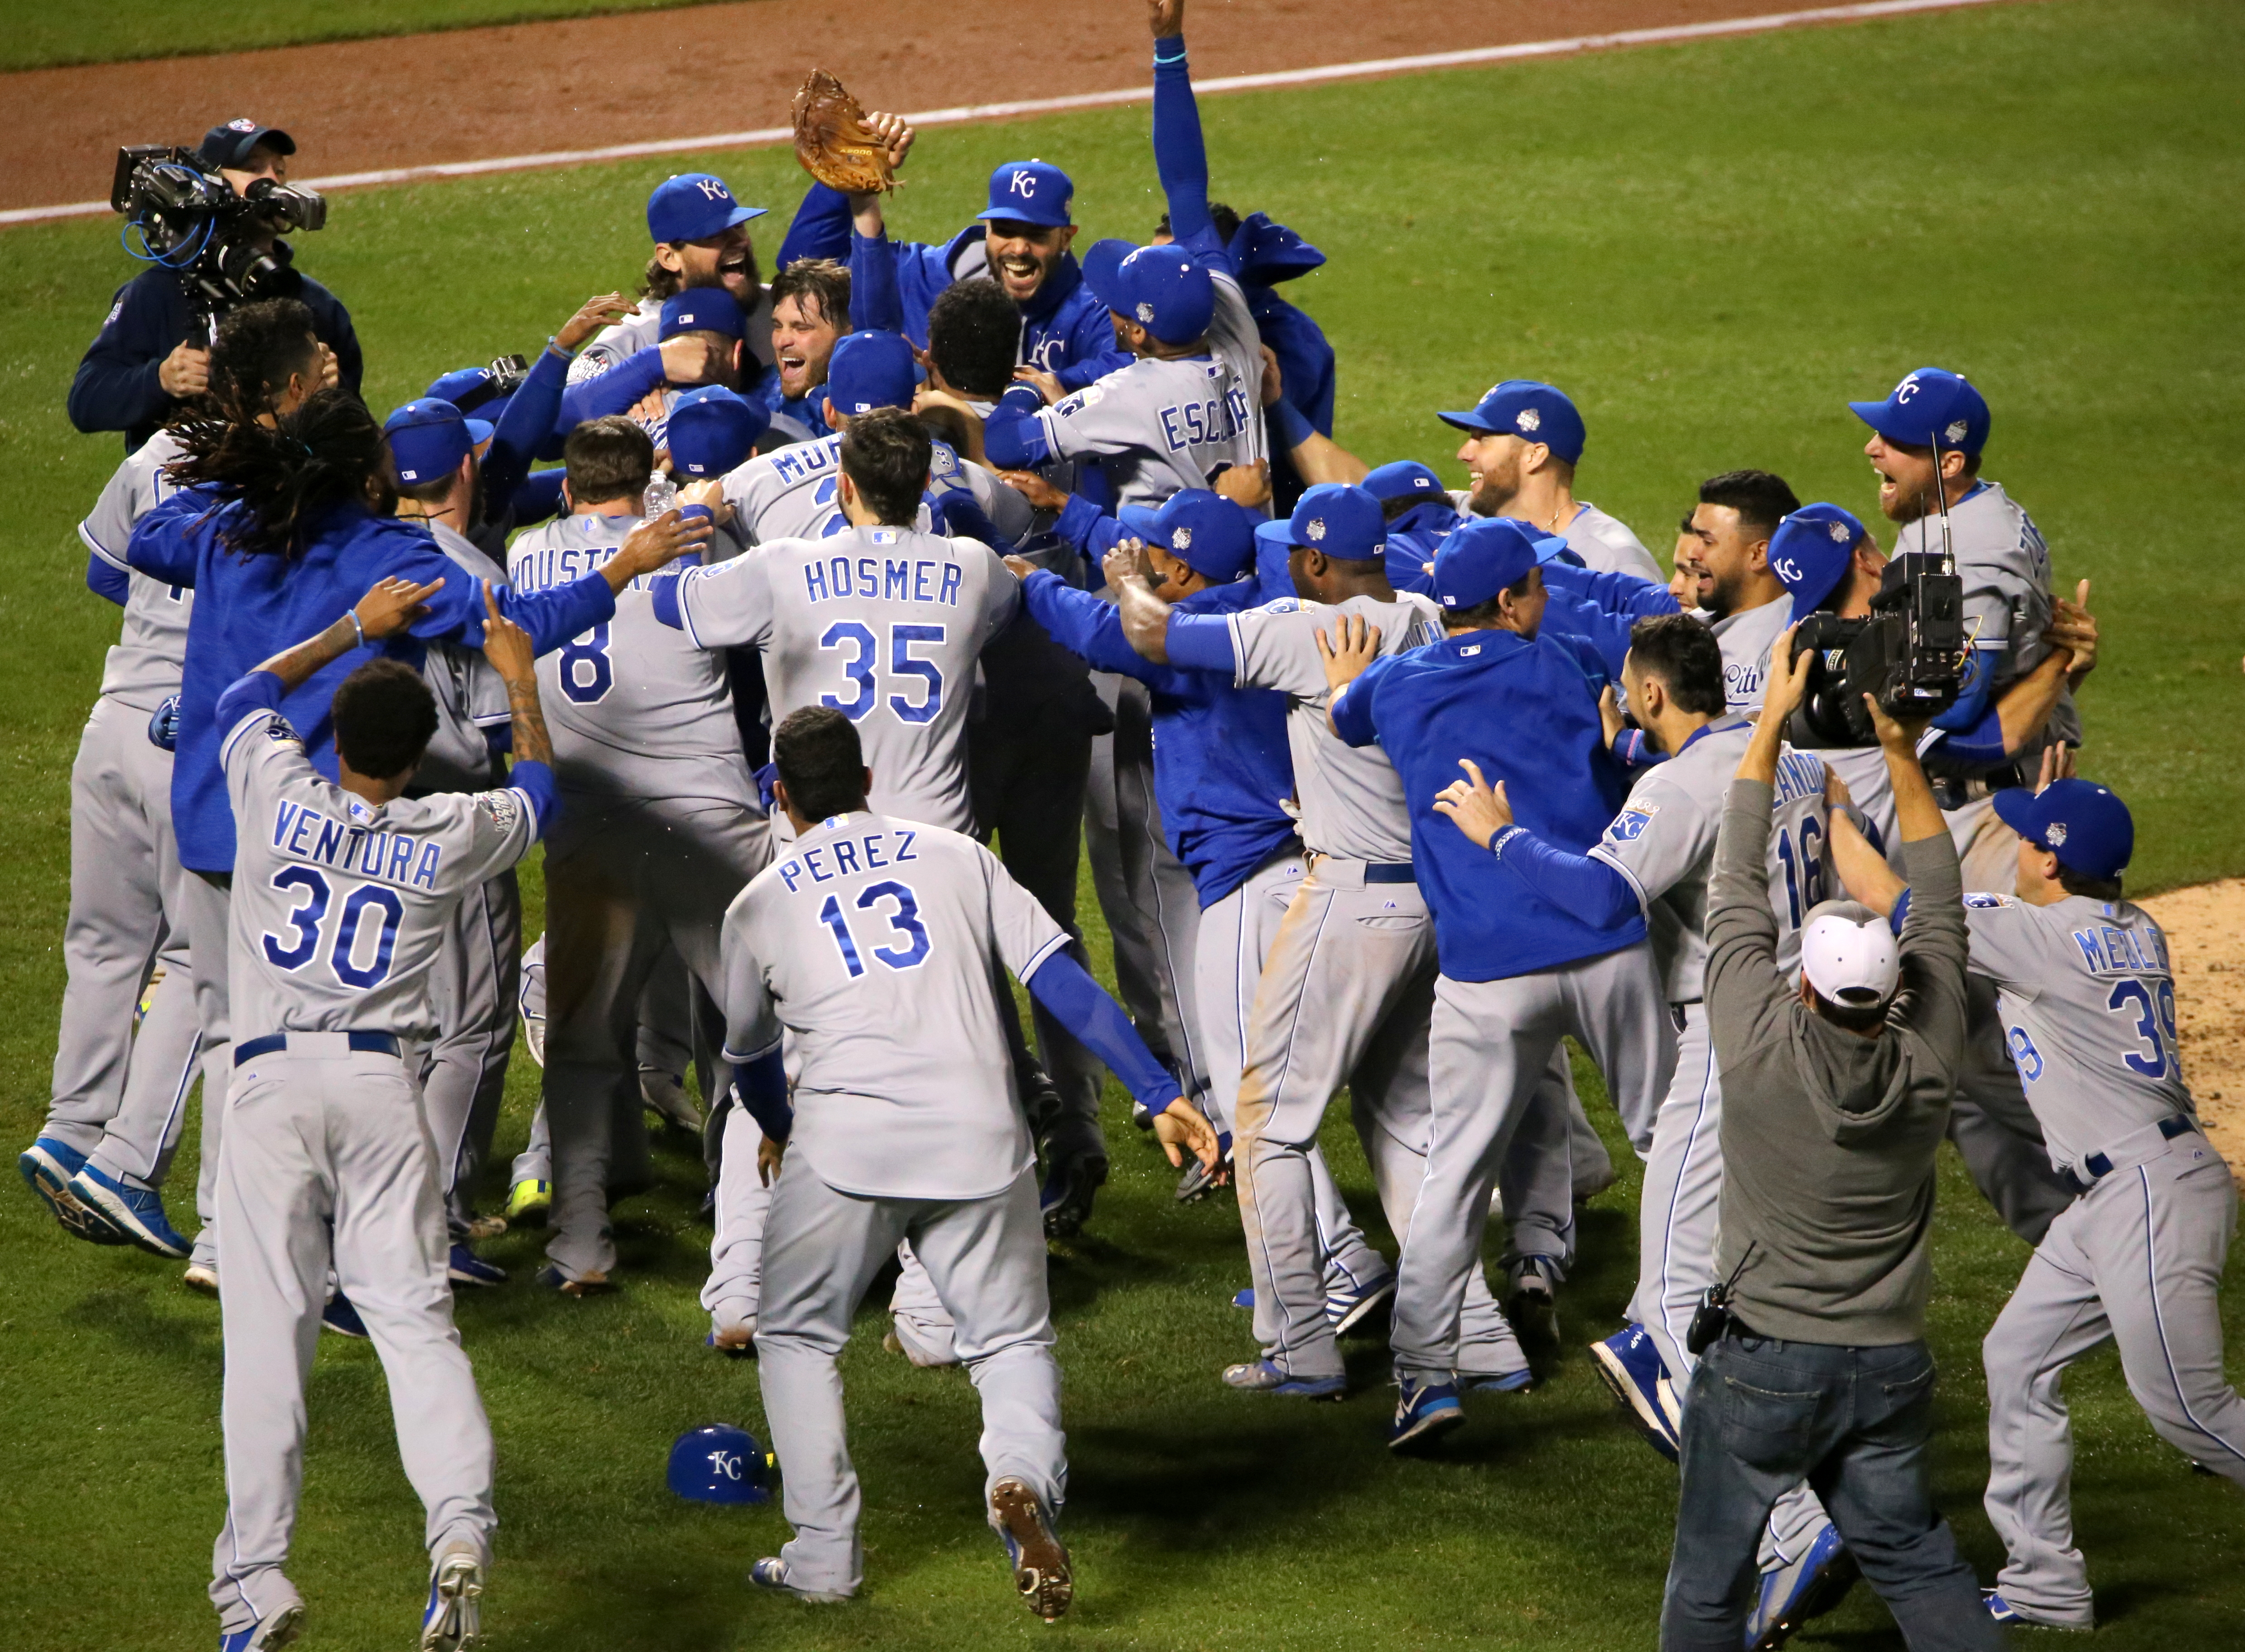 9416c43e 2015 Kansas City Royals season - Wikipedia